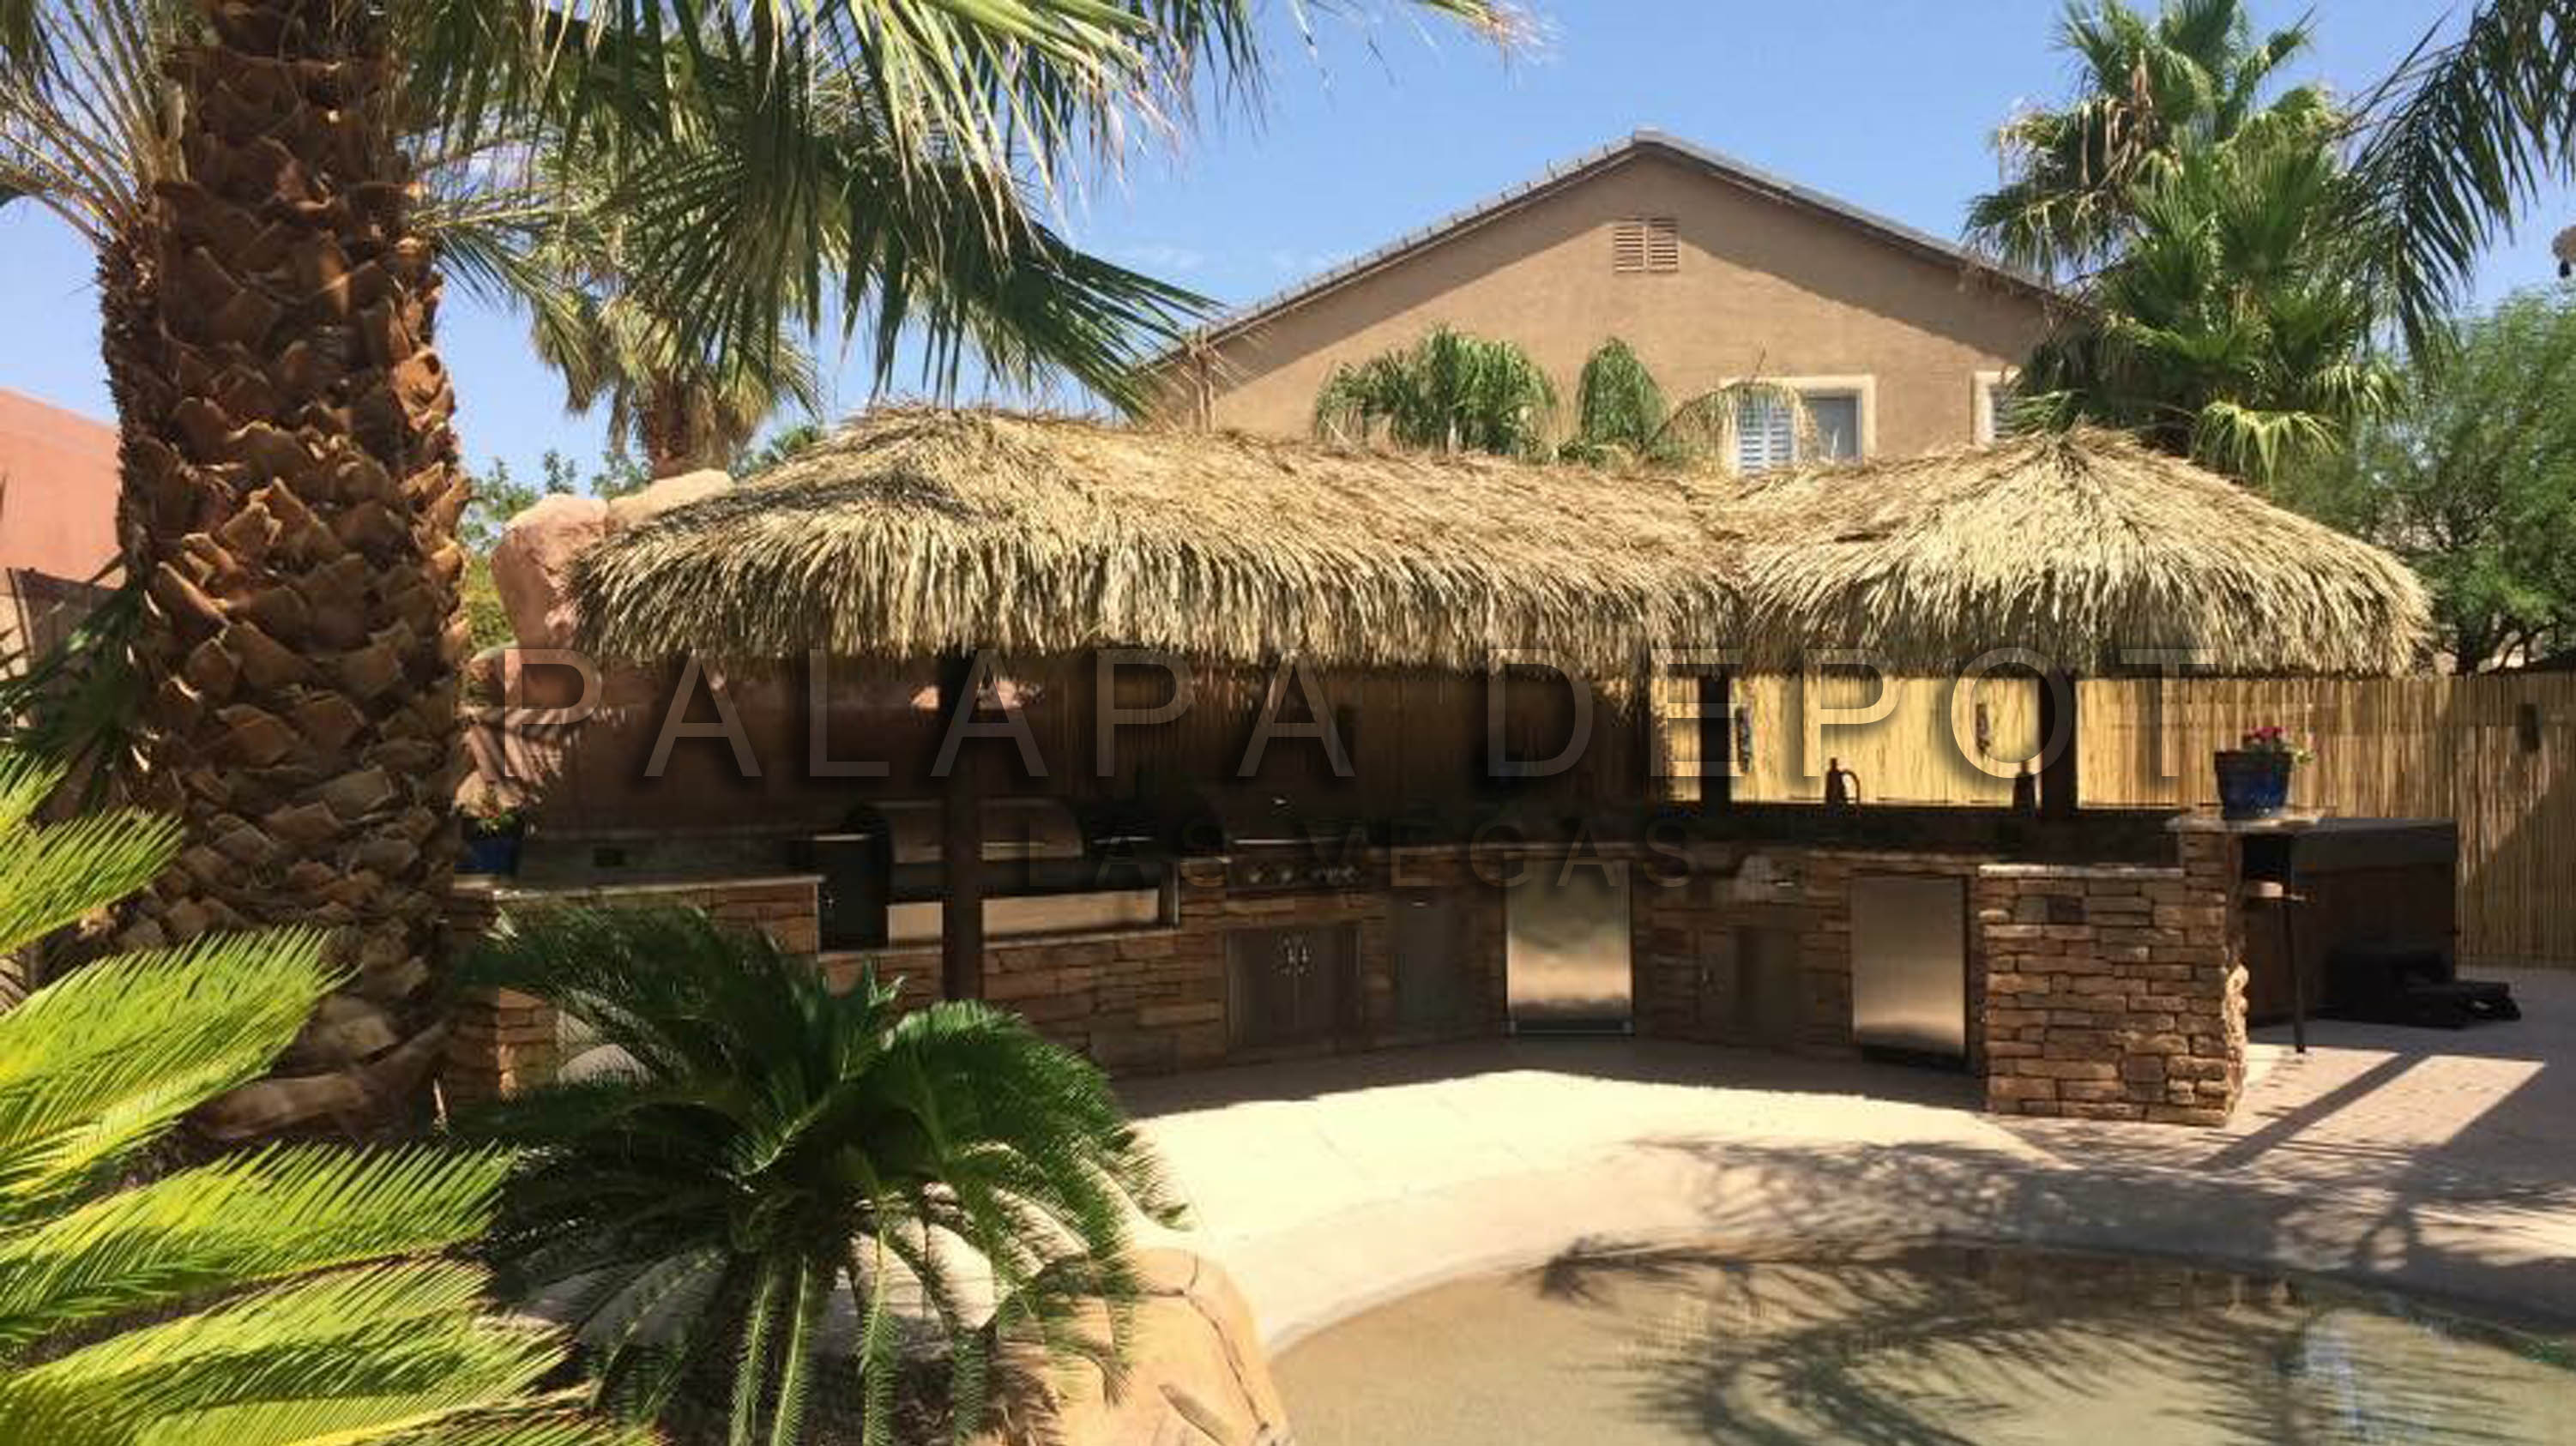 L Shaped palapa